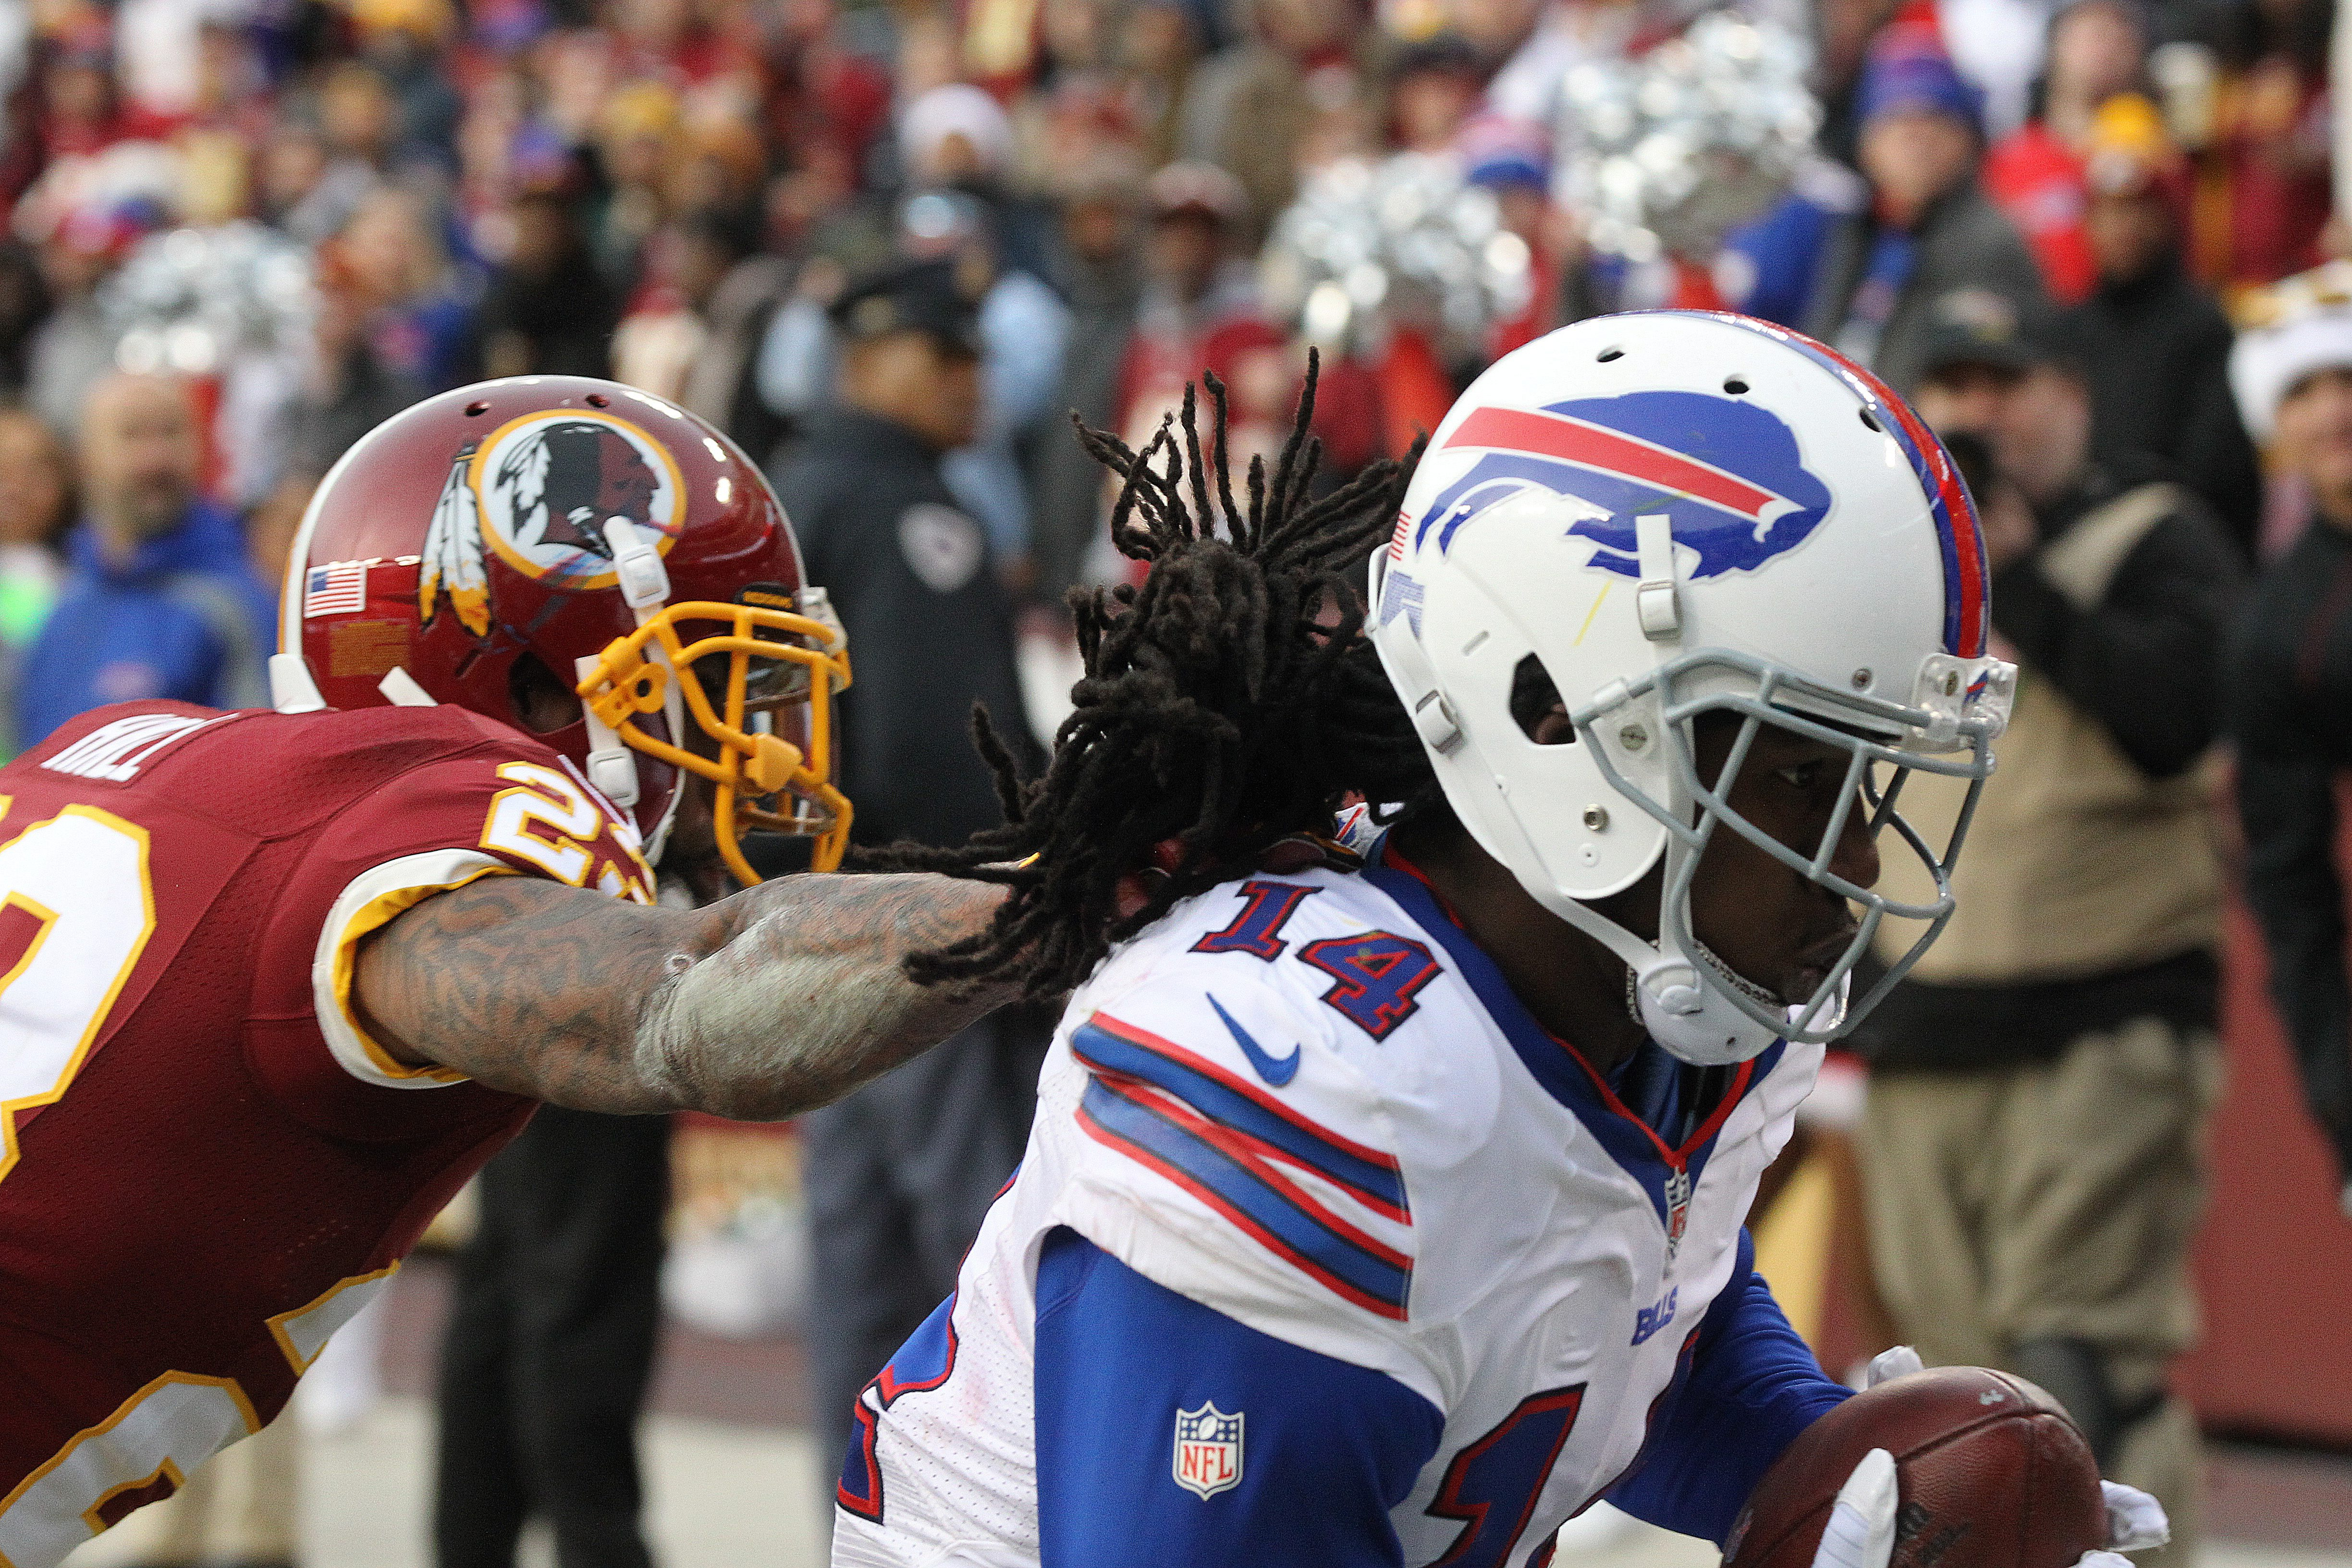 Sammy Watkins stood out for the Bills, on and off the field. (James P. McCoy/ Buffalo News)